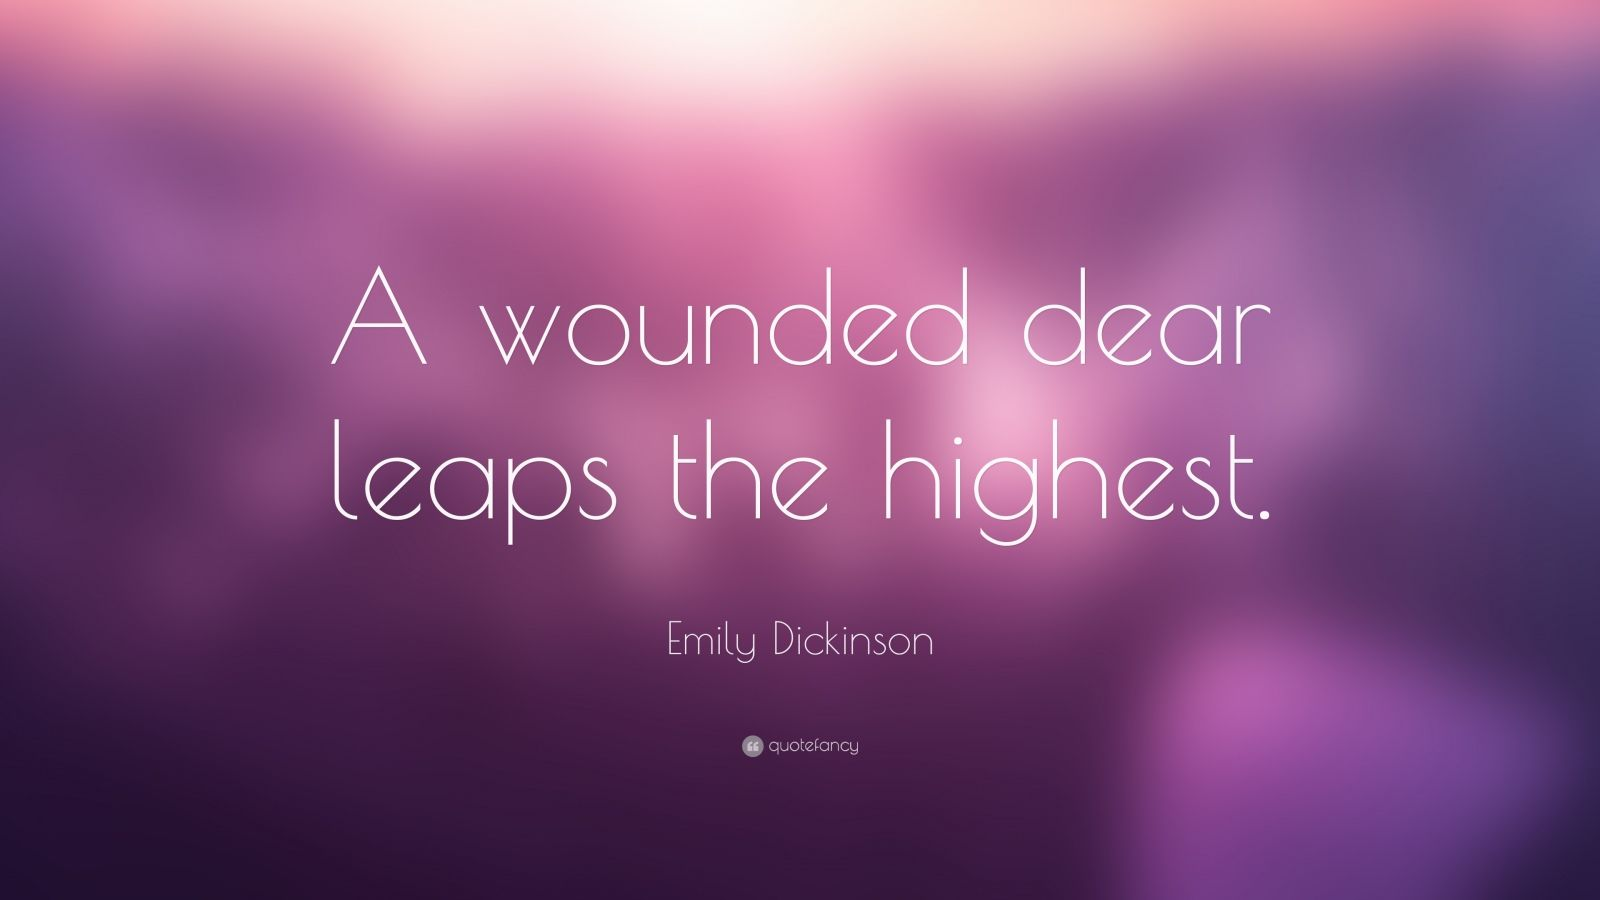 emily dickinson quotes 14 wallpapers quotefancy